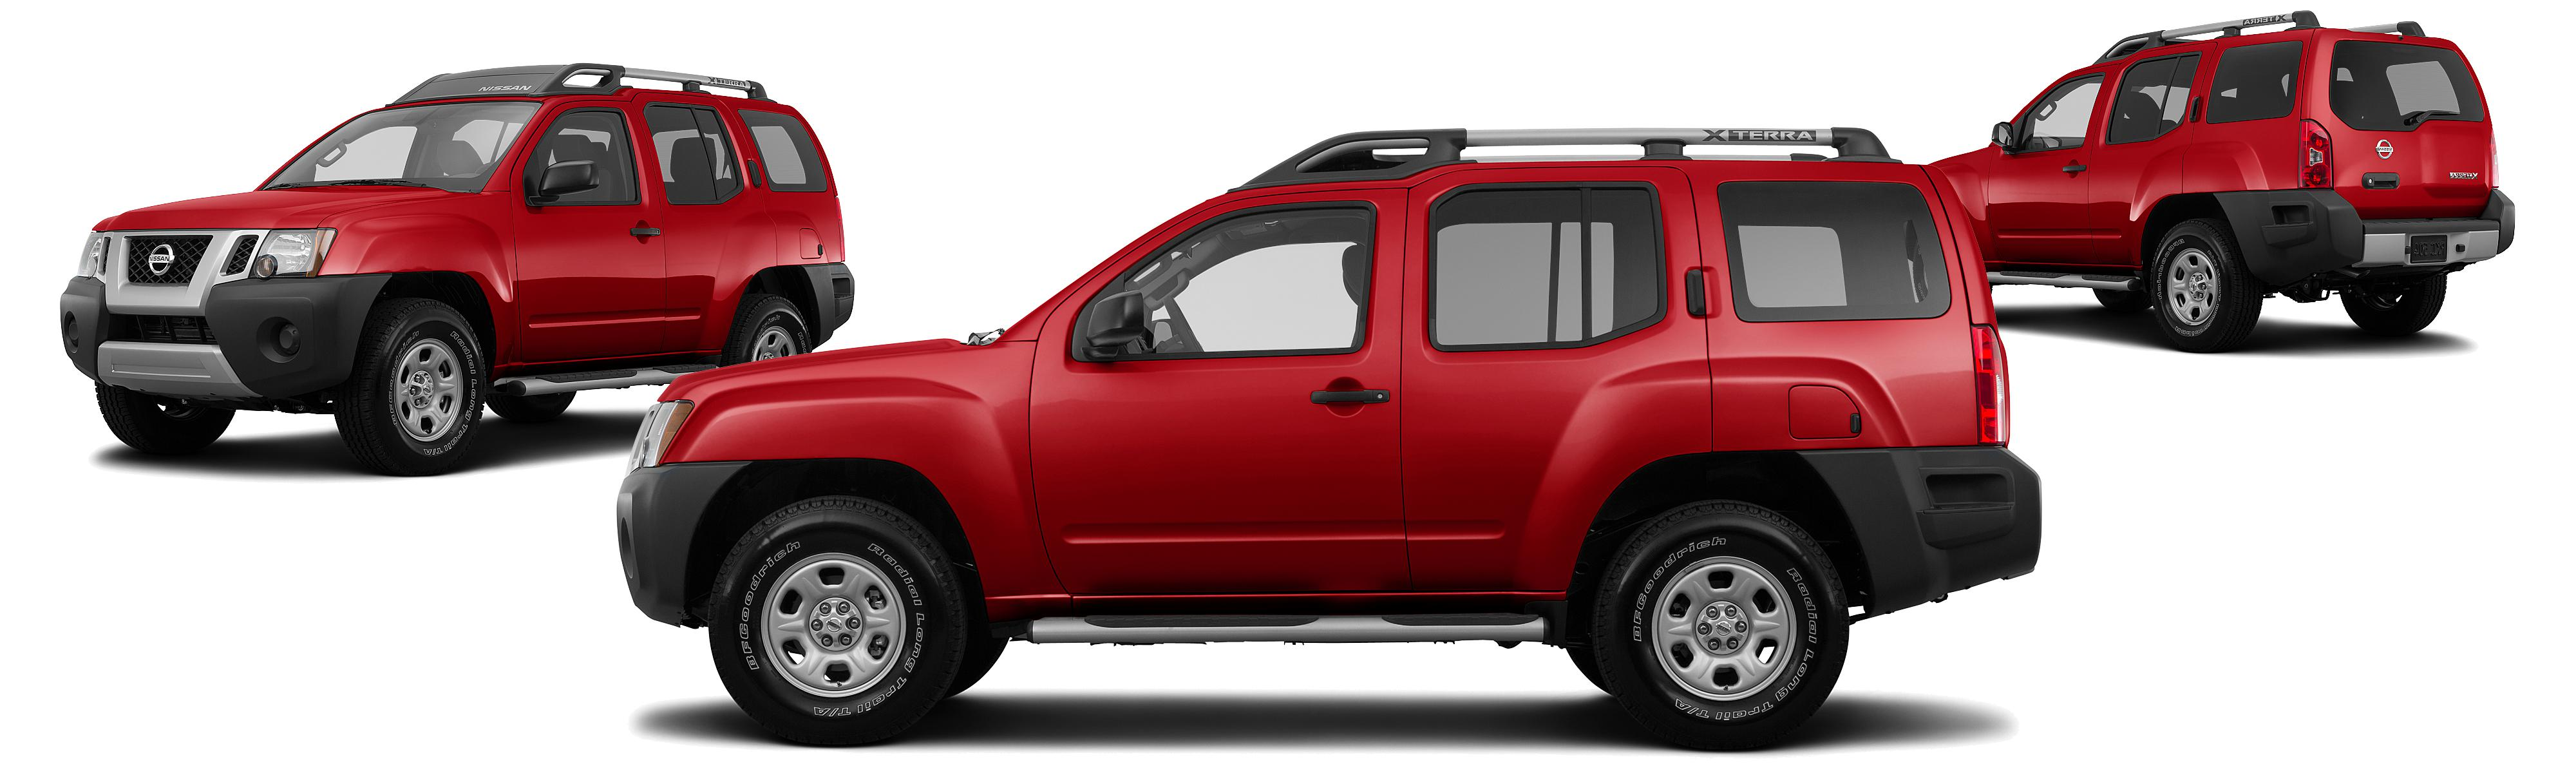 tn nissan maryvile outlet xterra for auto ron cars sale s